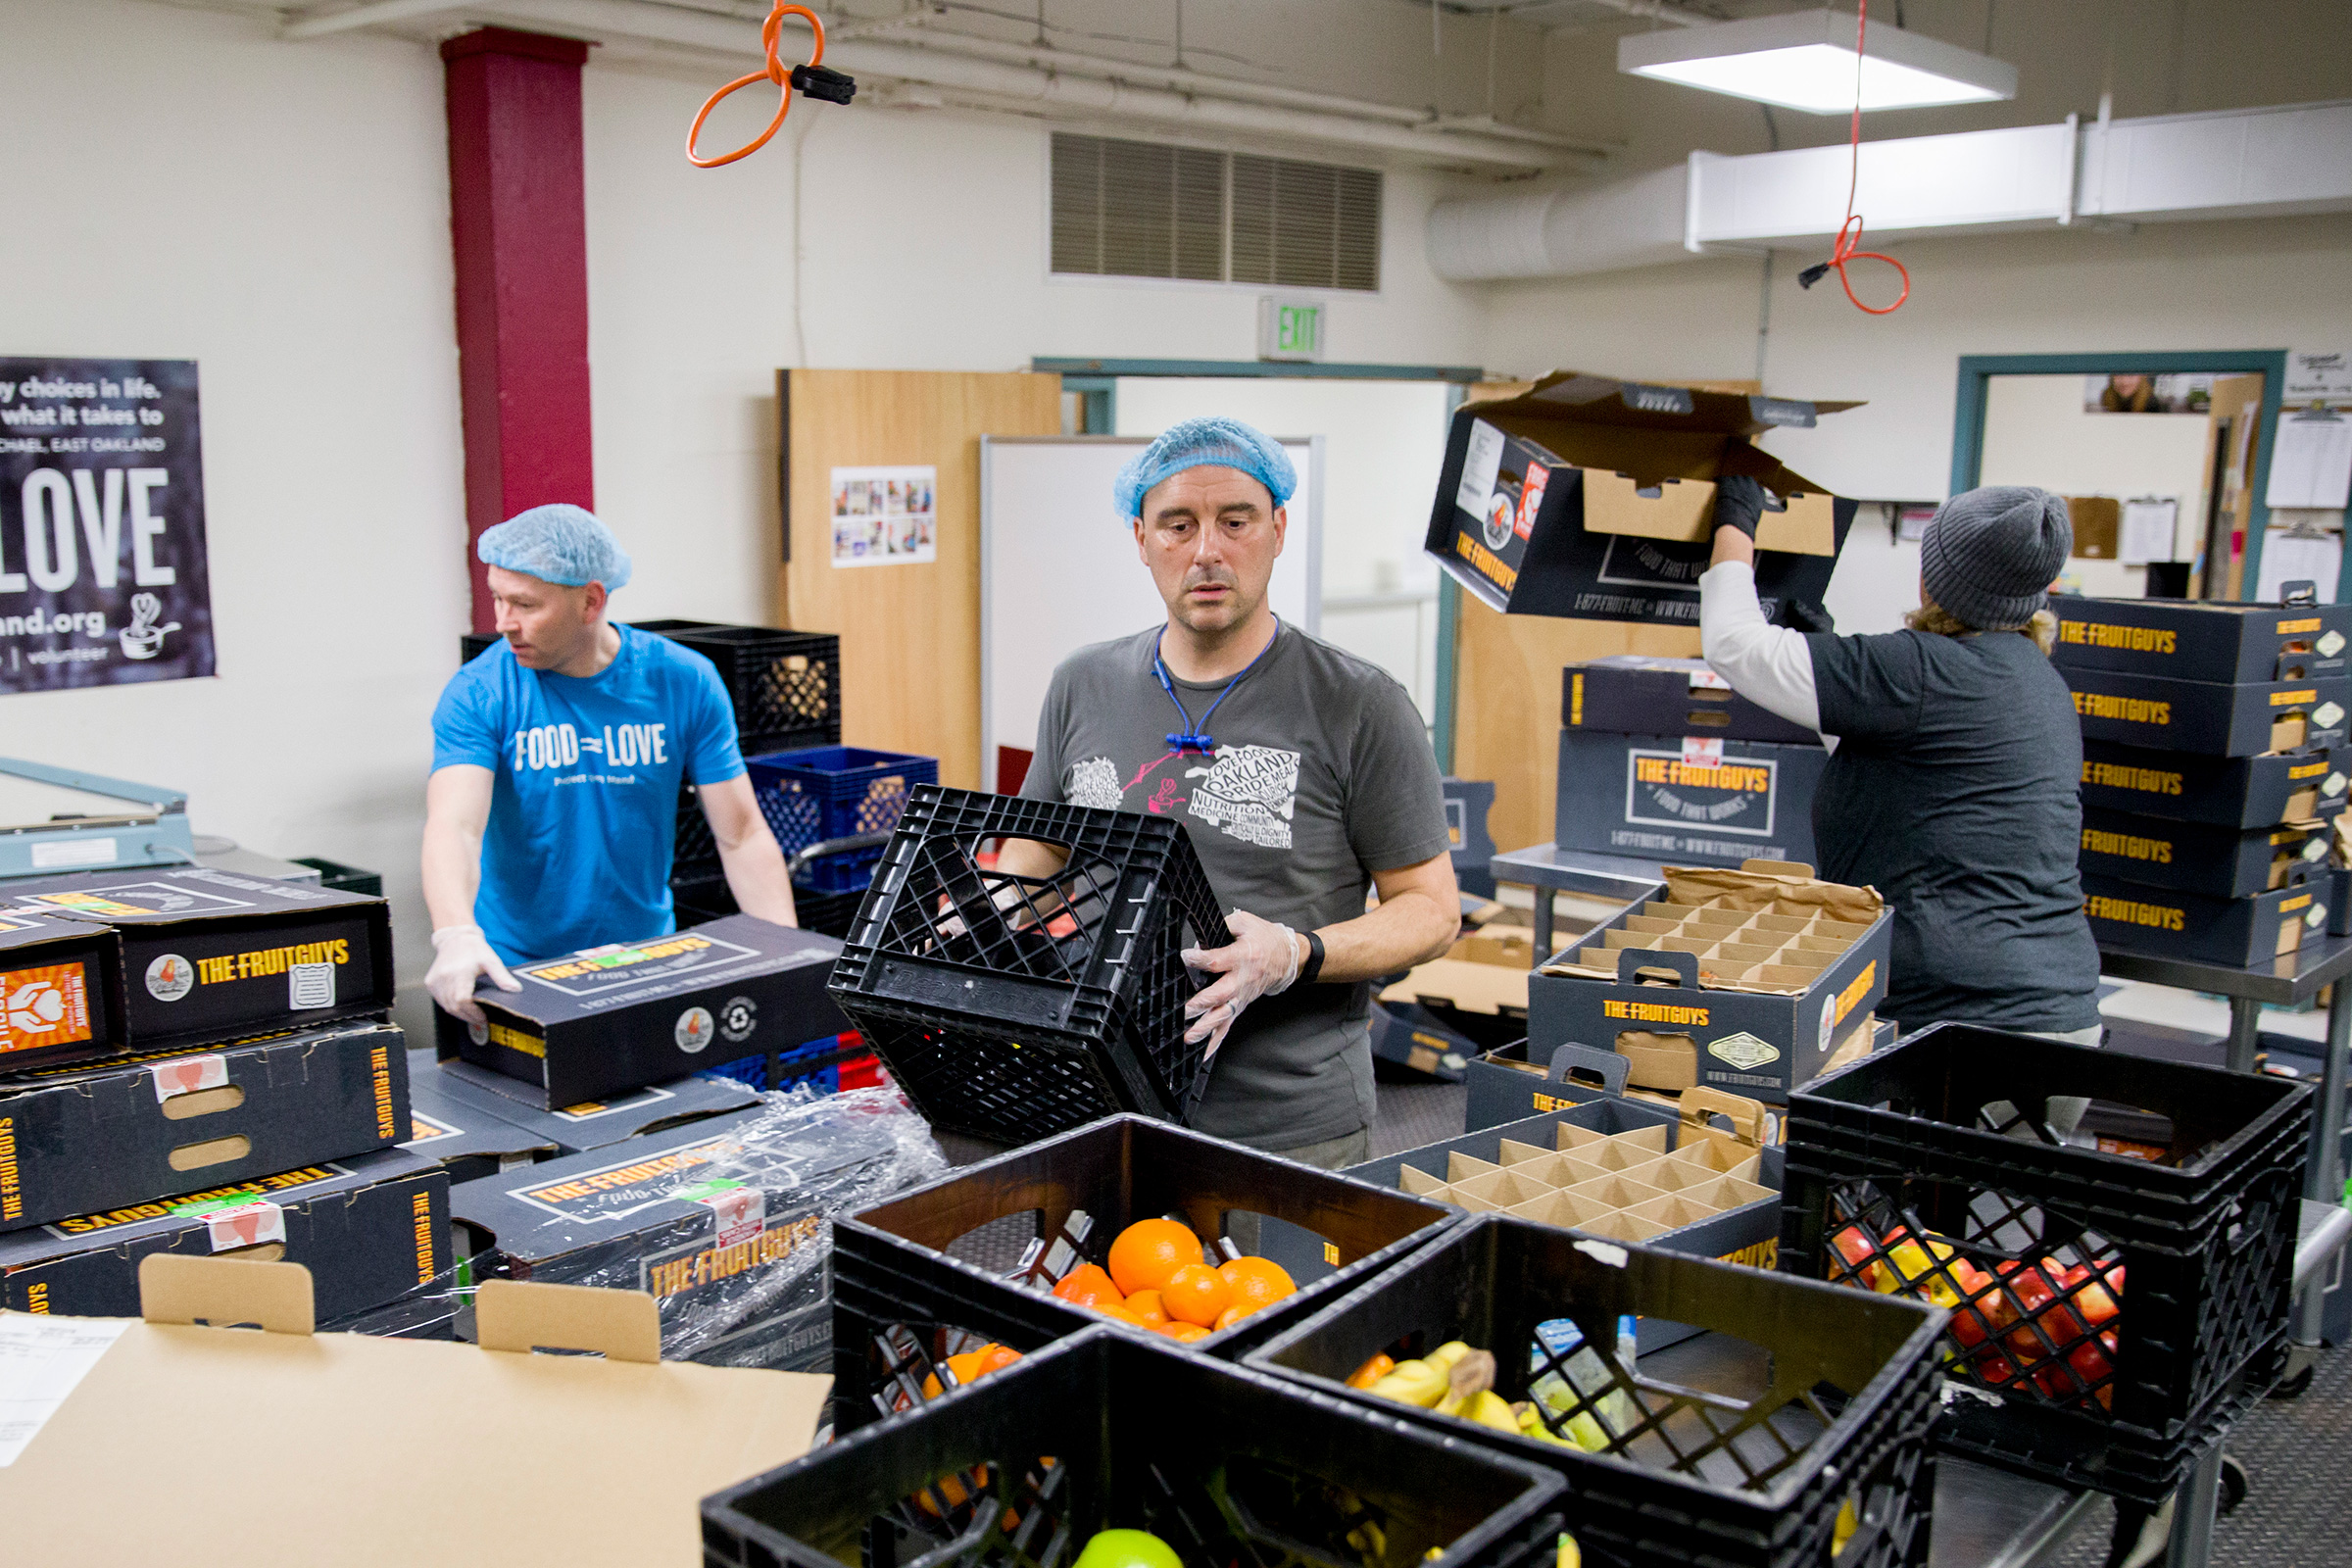 Michael McCormick and Daniel Cohen, of Project Open Hand, and Cindy Neill, operations manager for The Fruit Guys,                 sort through a palette of donated fruit boxes in the volunteer space at Project Open Hand in San Francisco, Calif. on March 25, 2020.